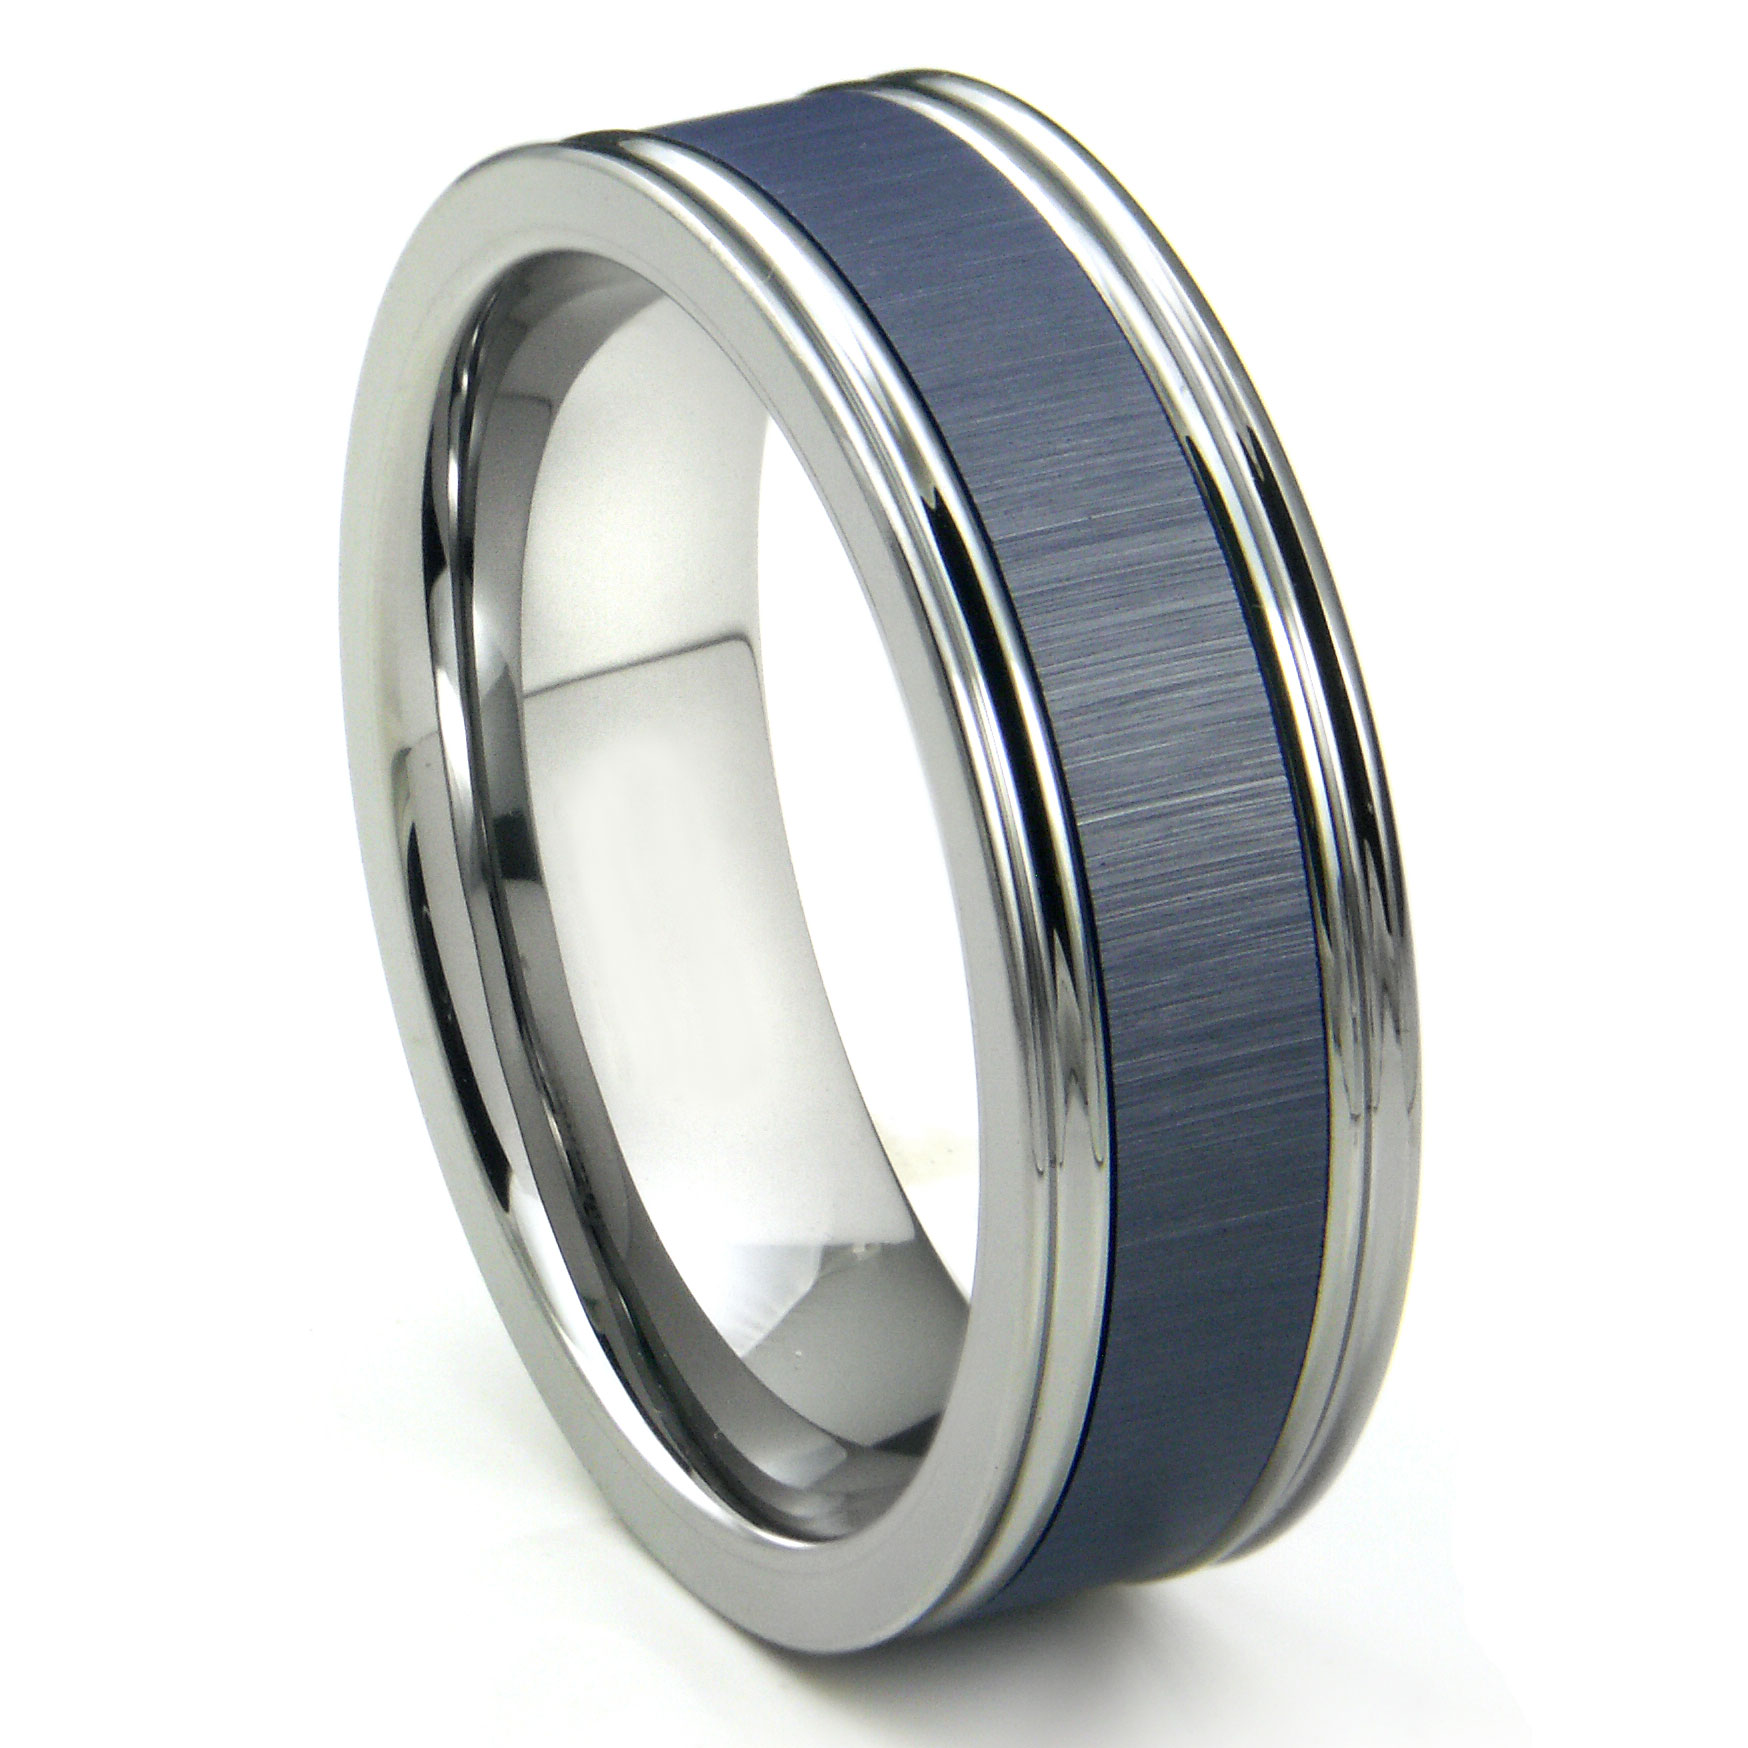 steel men polishing scroll jewelry stainless rings silver fashion black for man link ring cool unique ceramic s engraved a